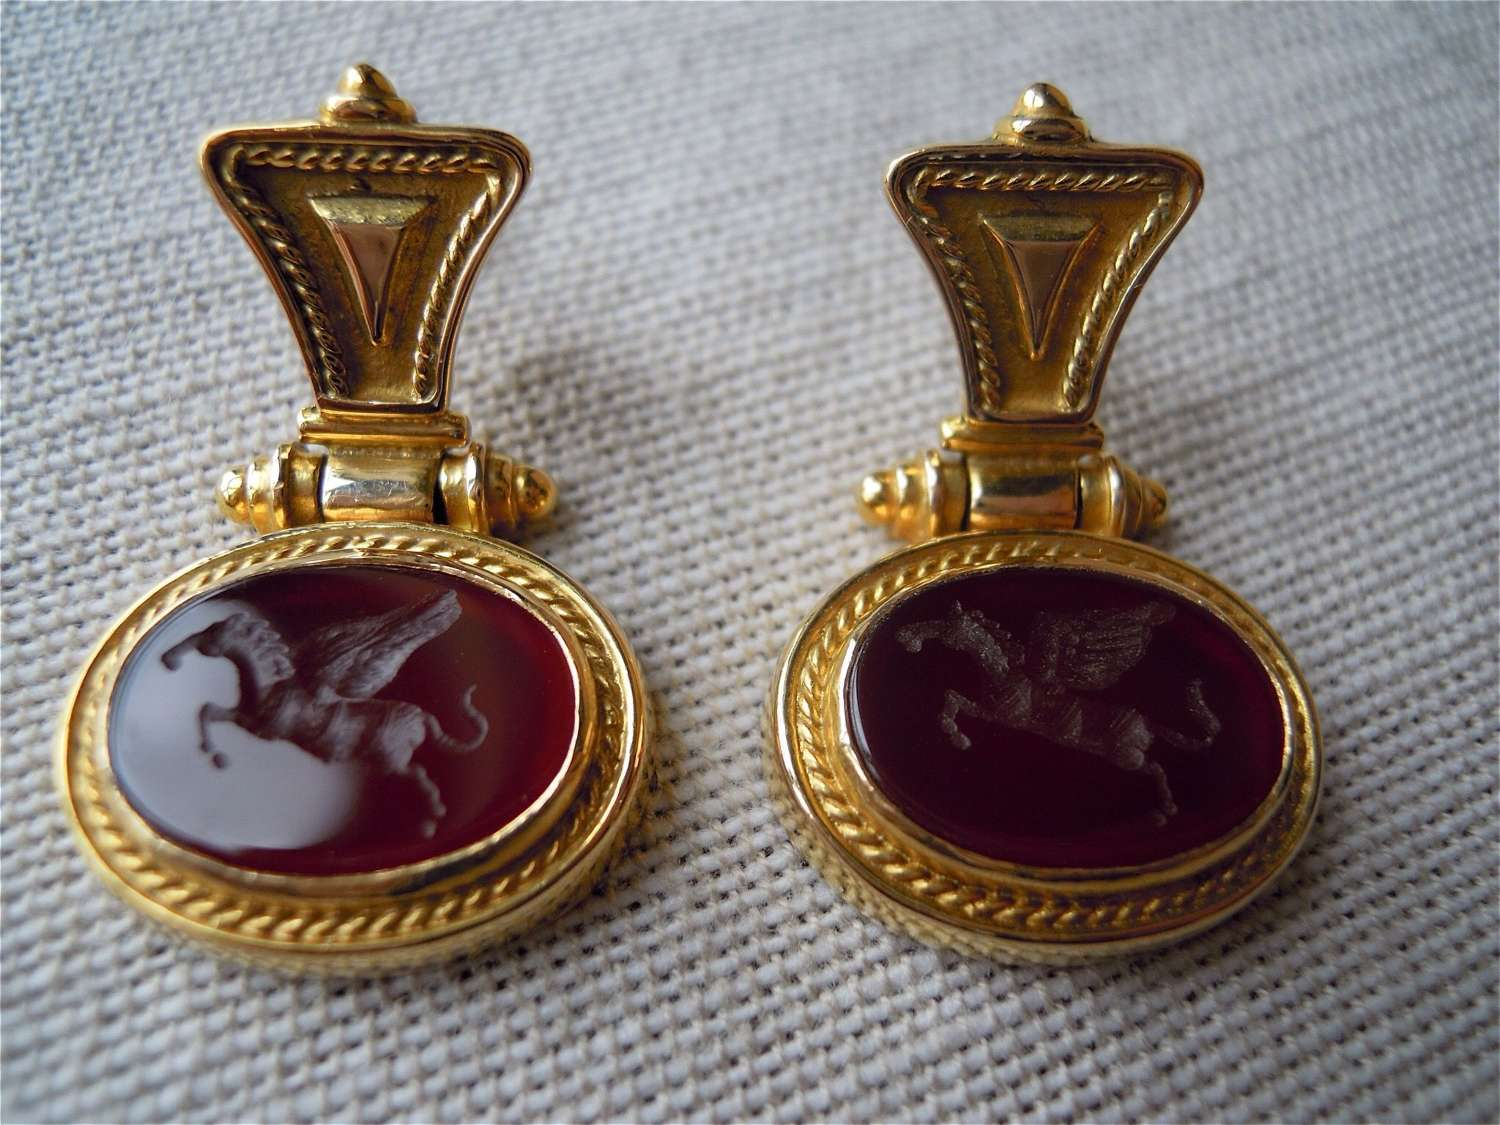 18ct gold and carnelian horse intaglio earrings